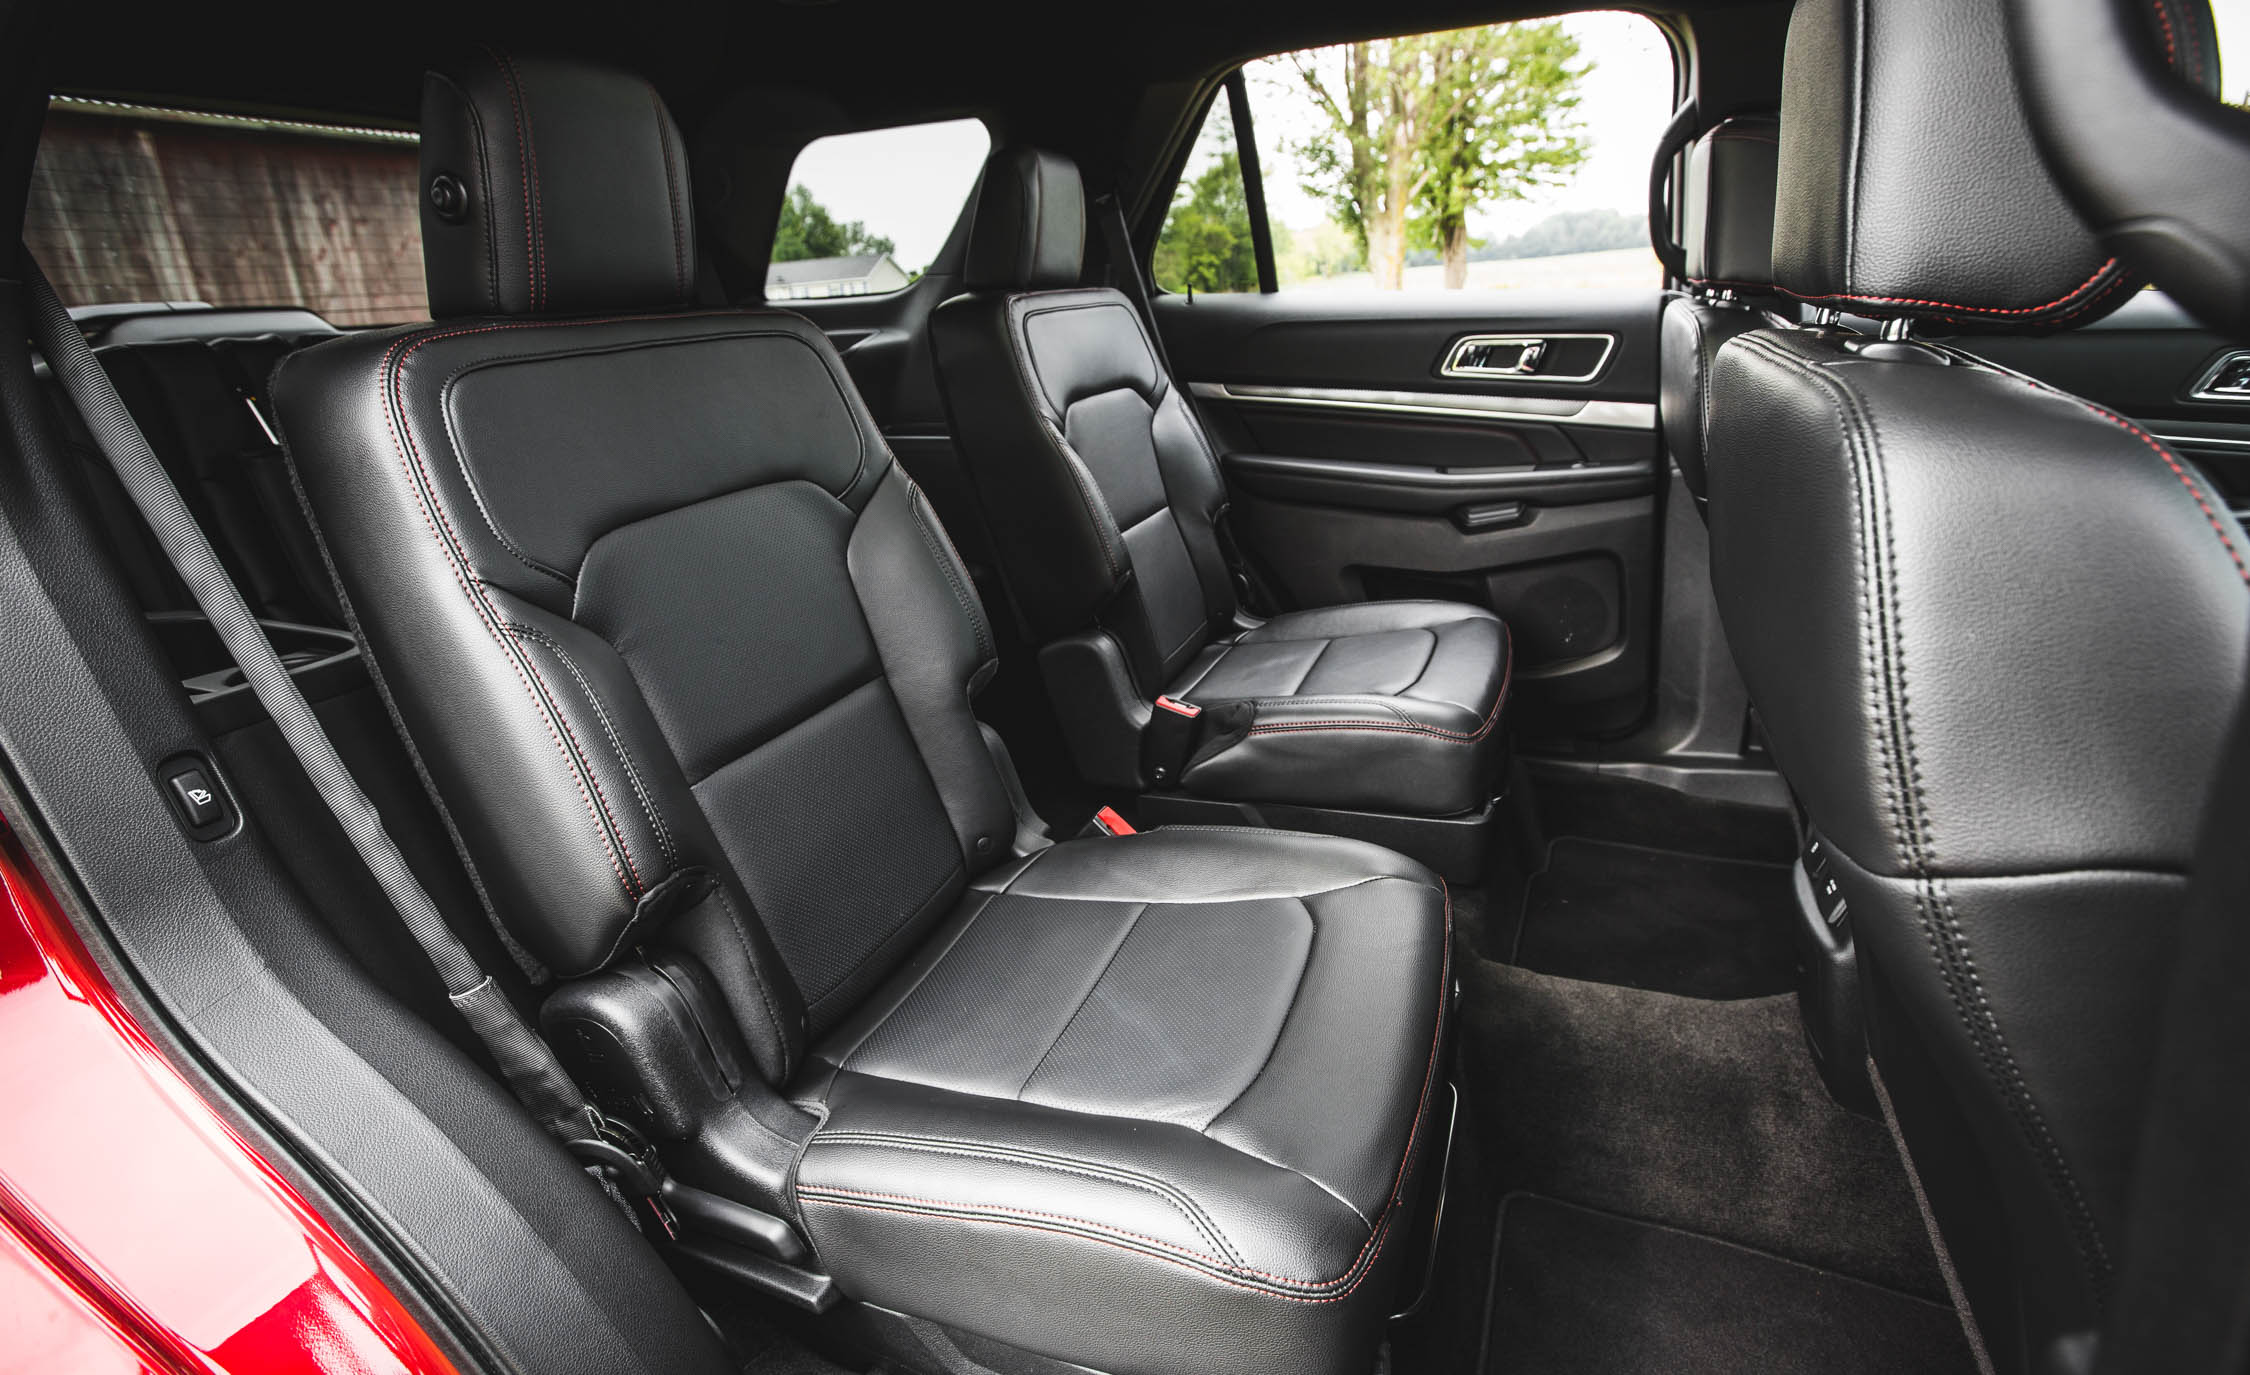 2016 Ford Explorer Sport Suv Review 9030 Cars Performance